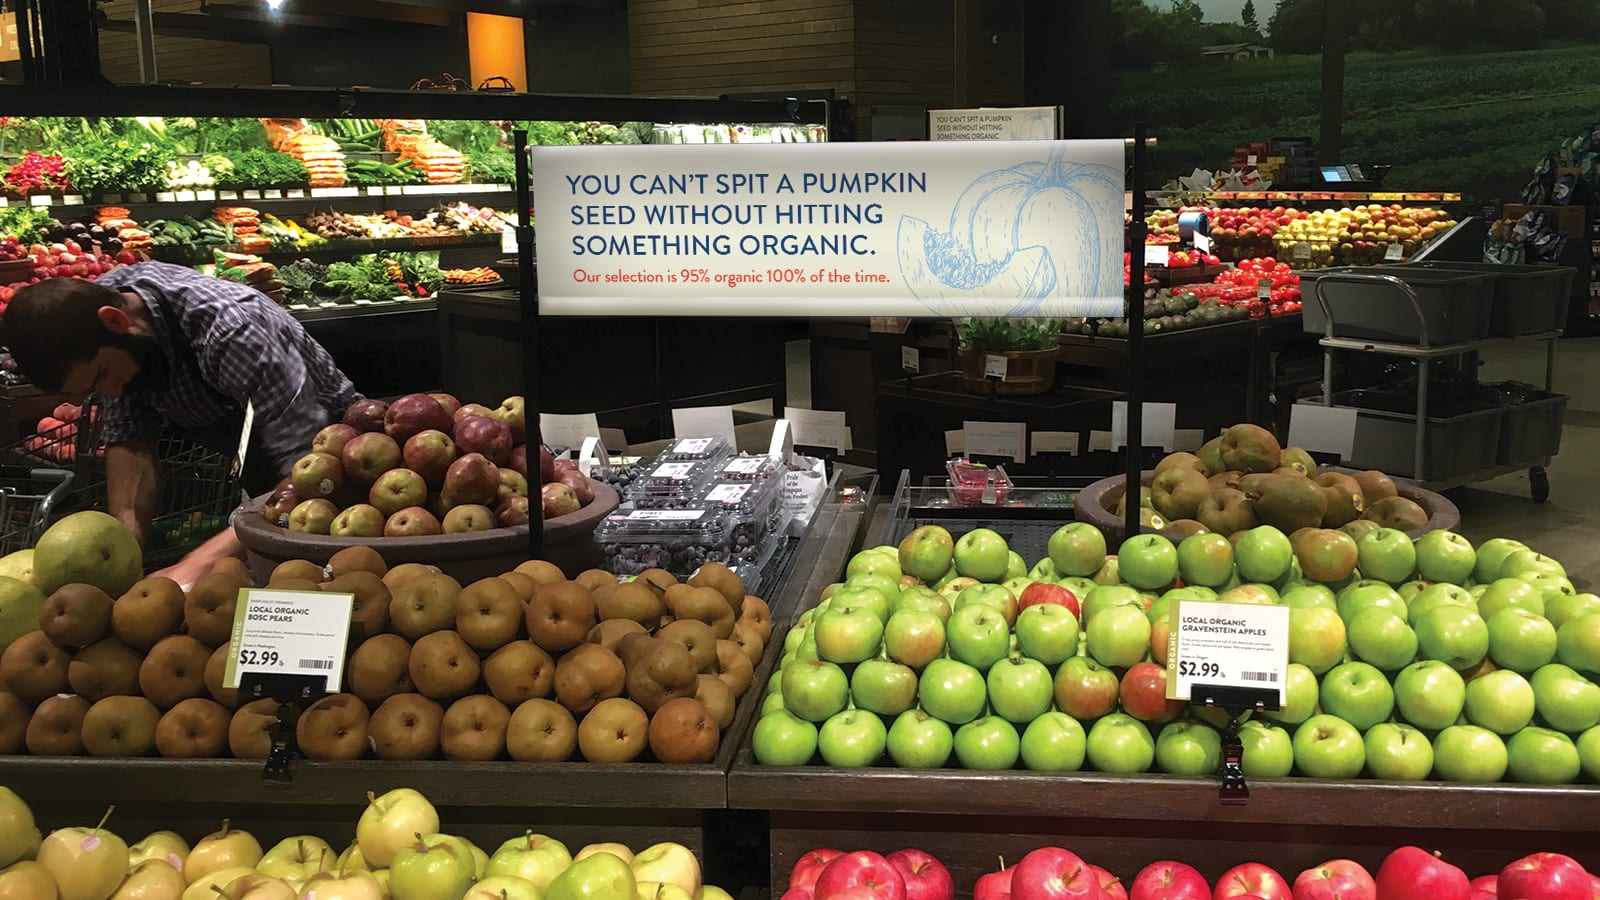 pcc bothell organic produce banner